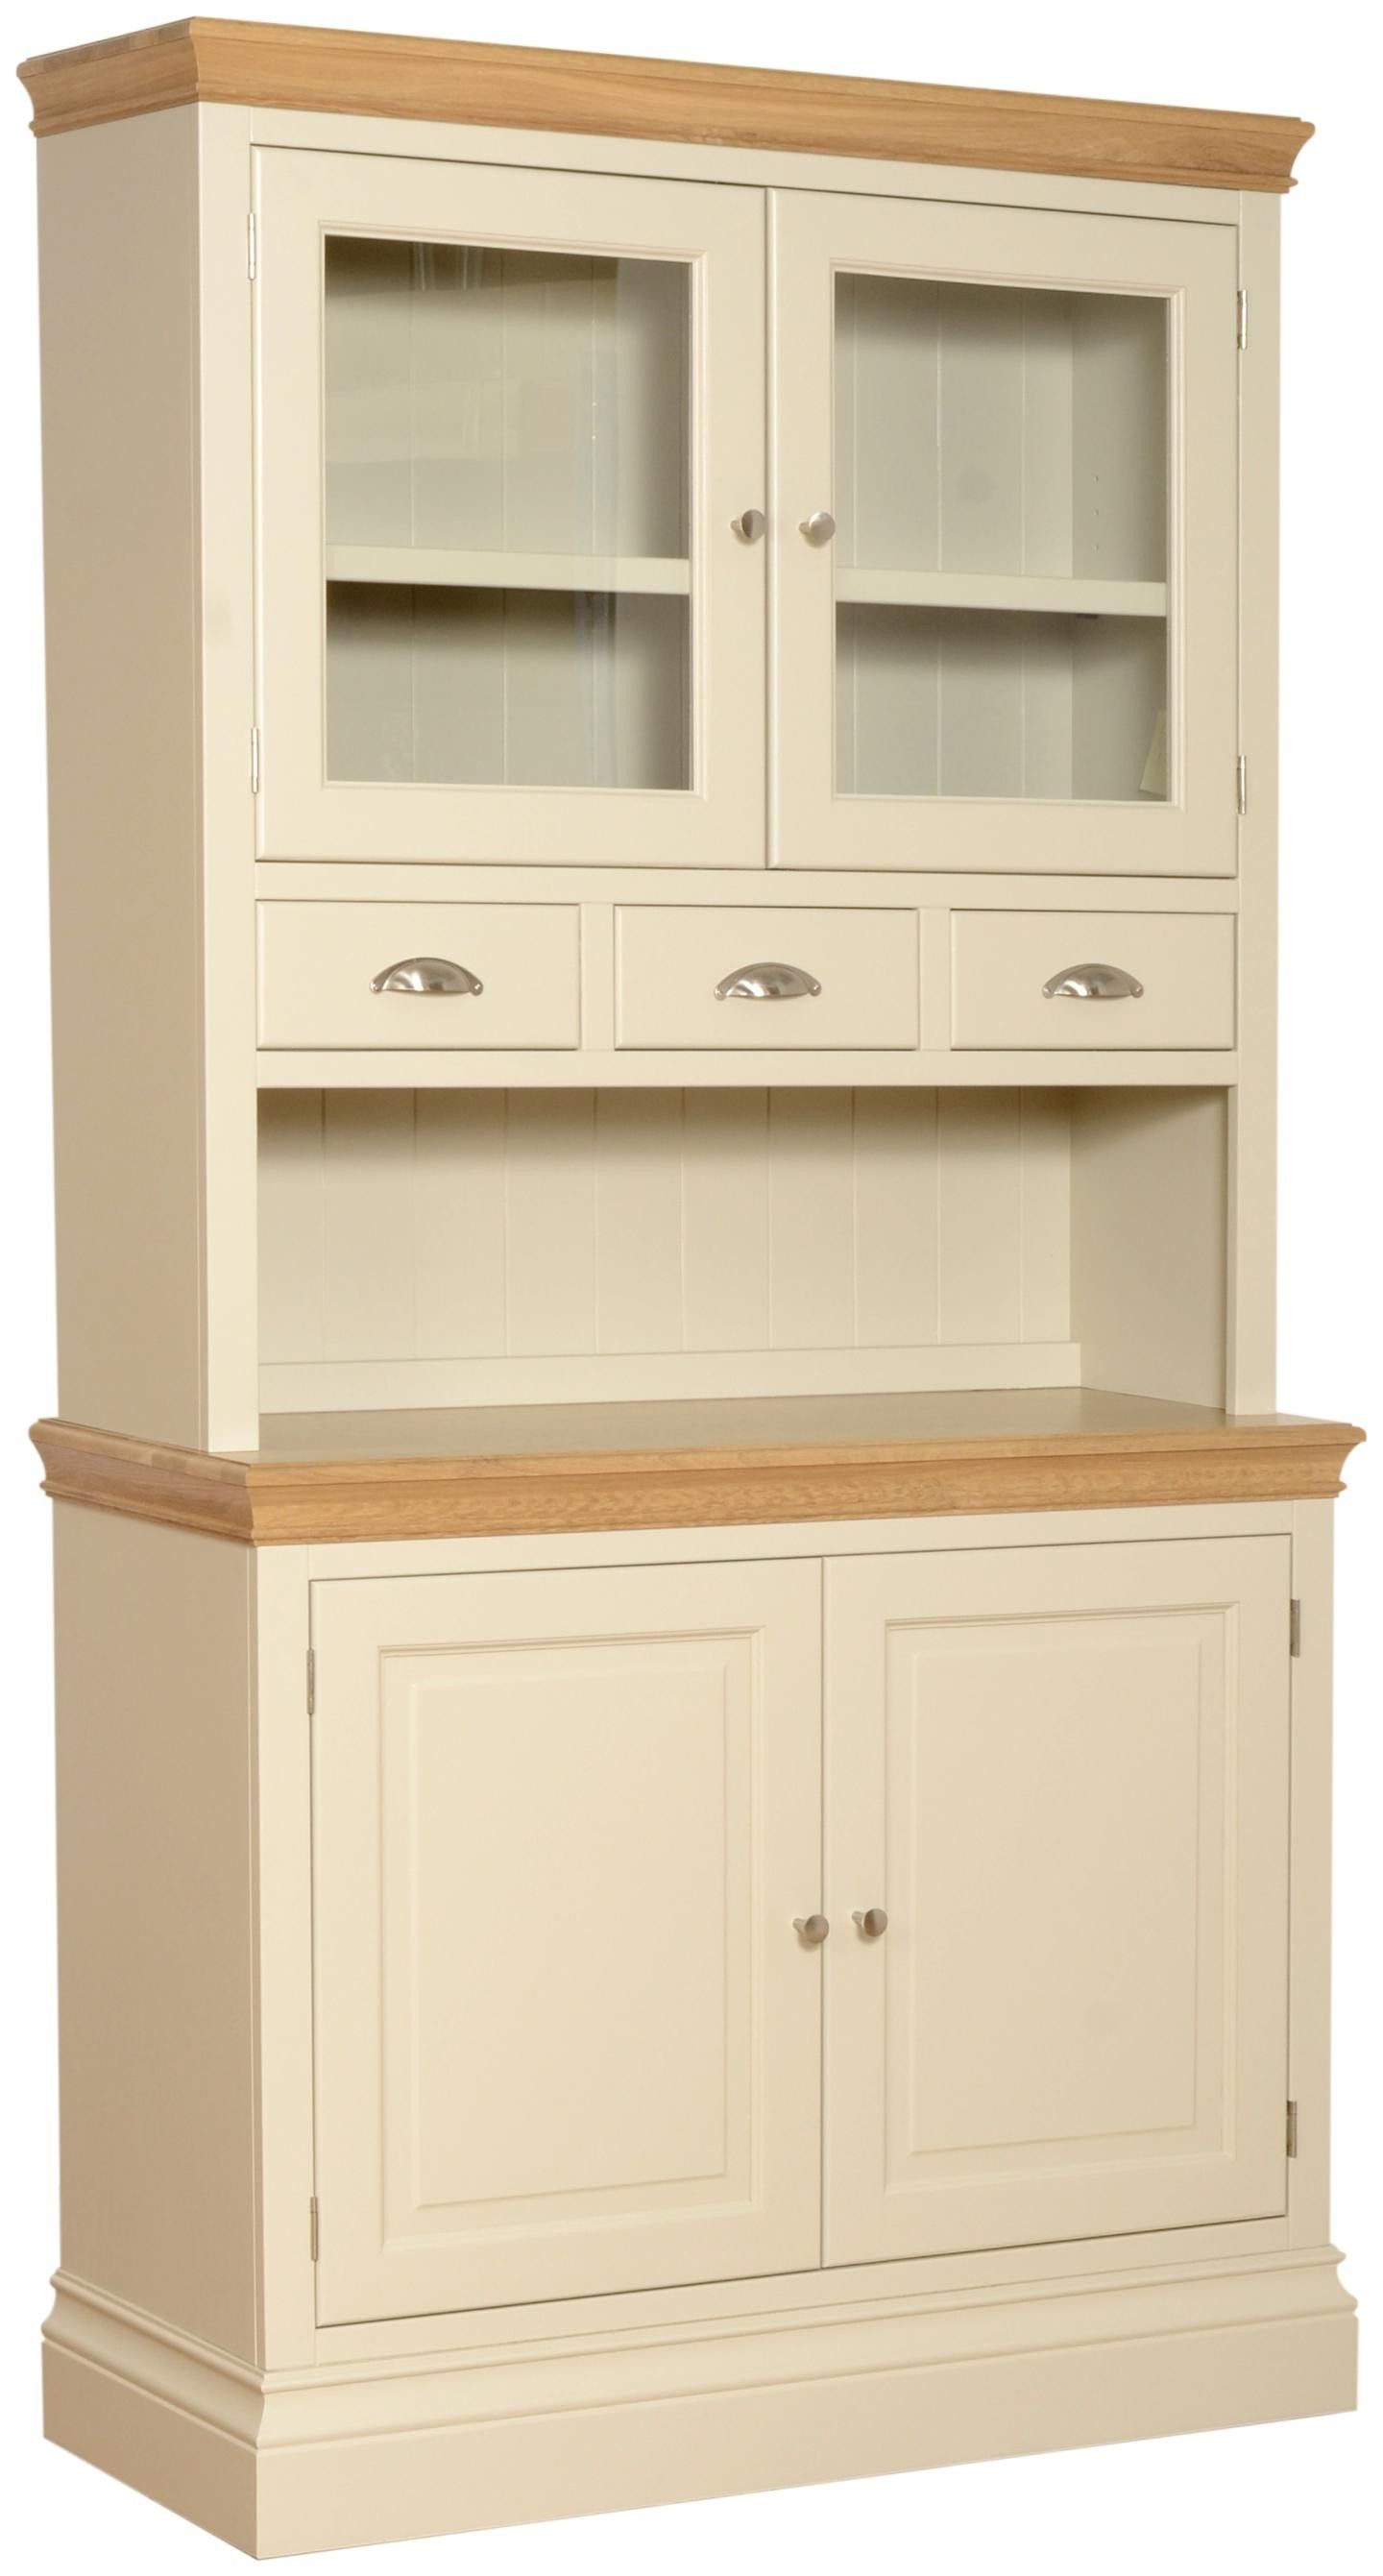 Buy Devonshire Lundy Pine Glass Top Dresser - 2 Door with Spice Drawers online by Devonshire Pine and Oak from CFS UK at unbeatable price. & Emily 2 Door Sideboard With Glass Doors and Spice Drawers Painted ...